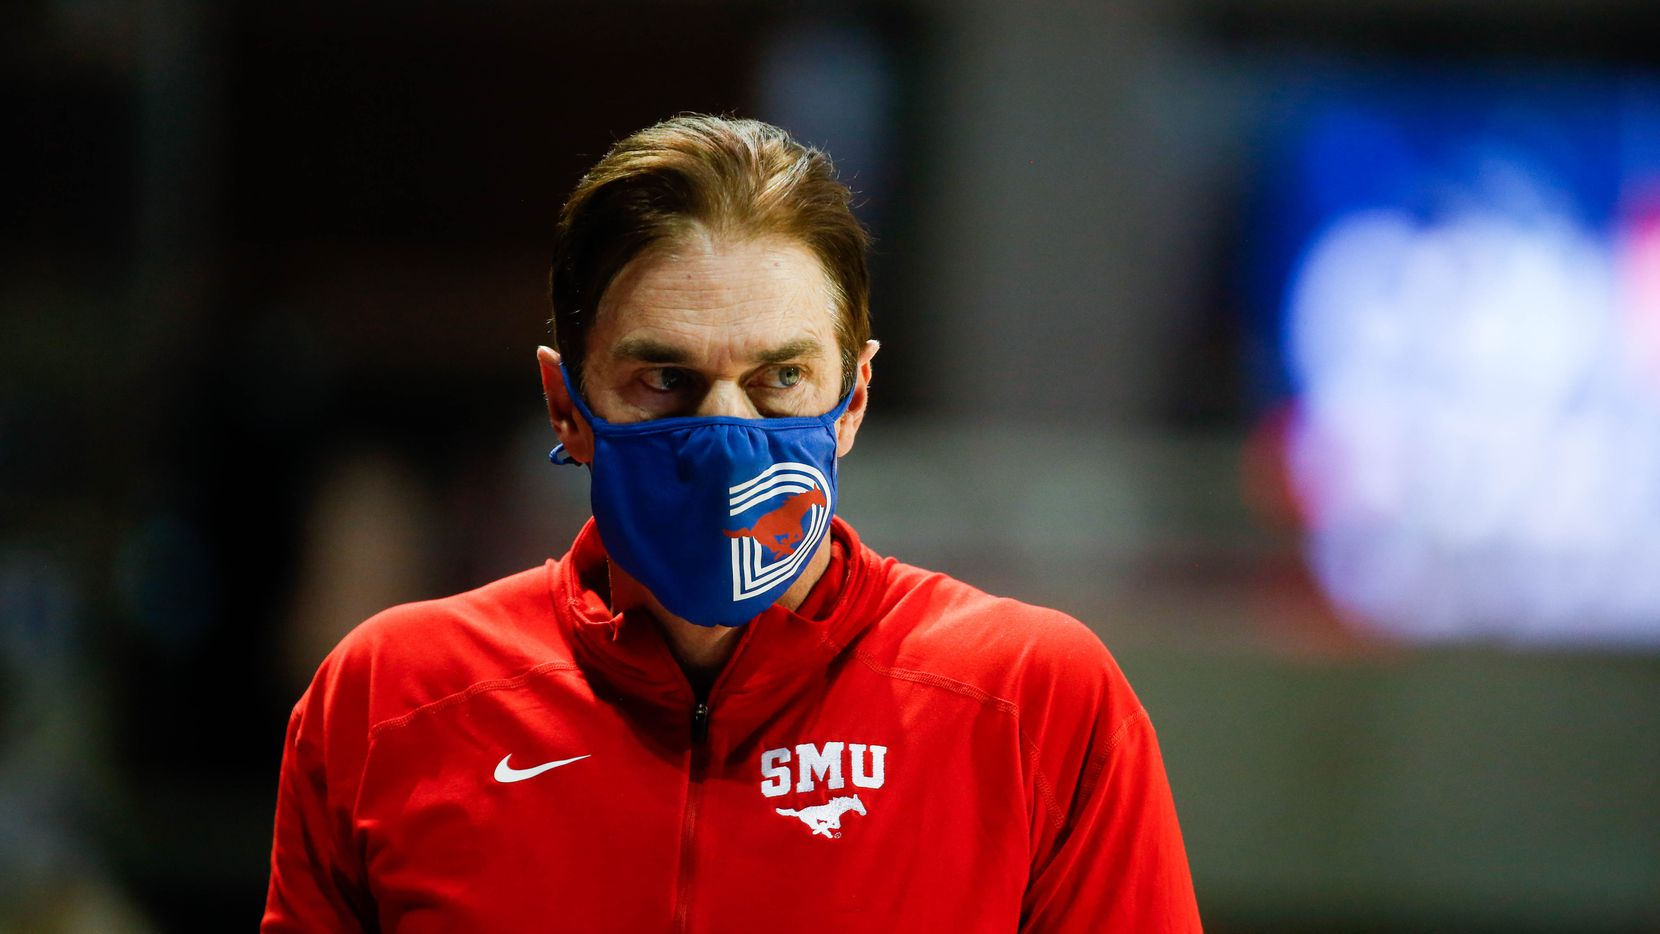 SMU head basketball coach Tim Jankovich watches from the sideline during the first half of a game against East Carolina at Moody Coliseum in Dallas on Wednesday, Dec. 16, 2020.